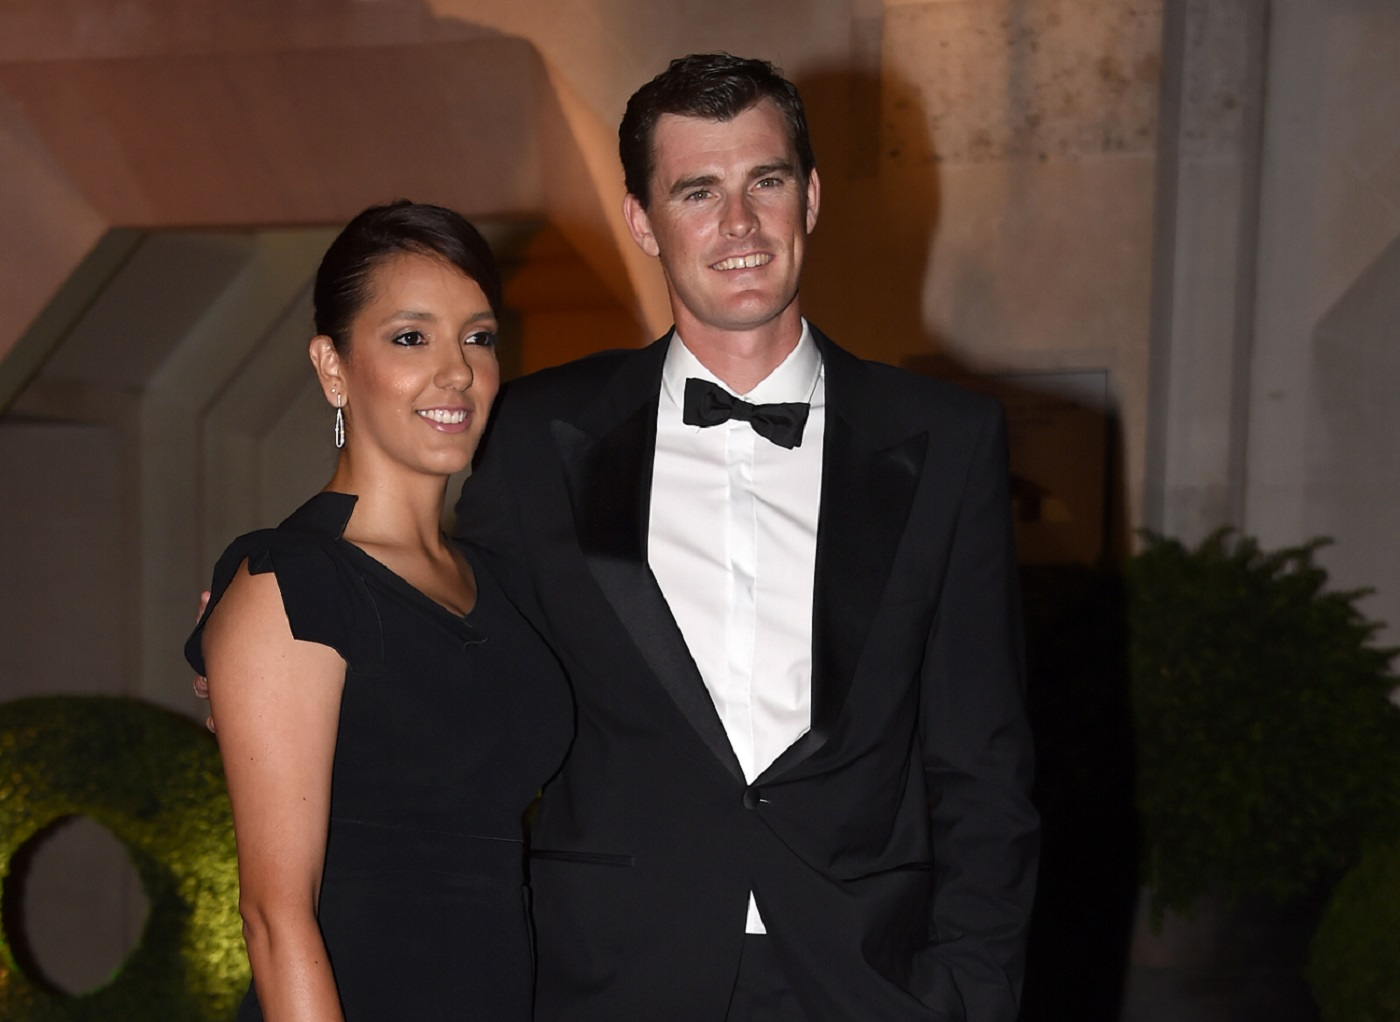 Jamie Murray and Alejandra Gutierrez arriving at the Wimbledon Champions Dinner 2017, at the Guildhall, London.